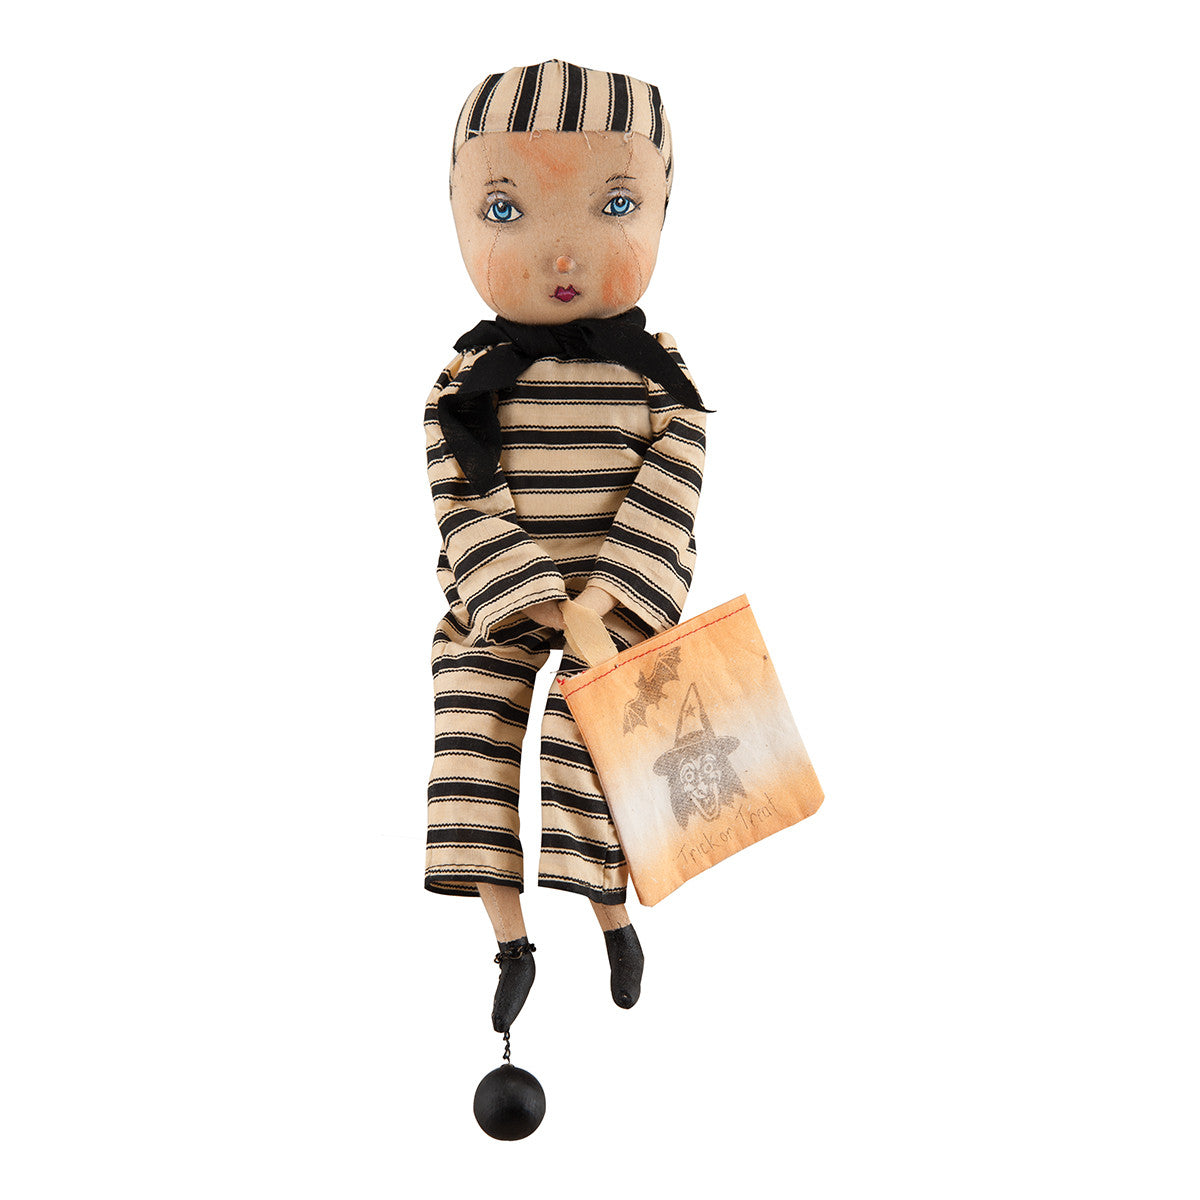 Keaton Prisoner Doll by Joe Spencer - Cloth Halloween Doll